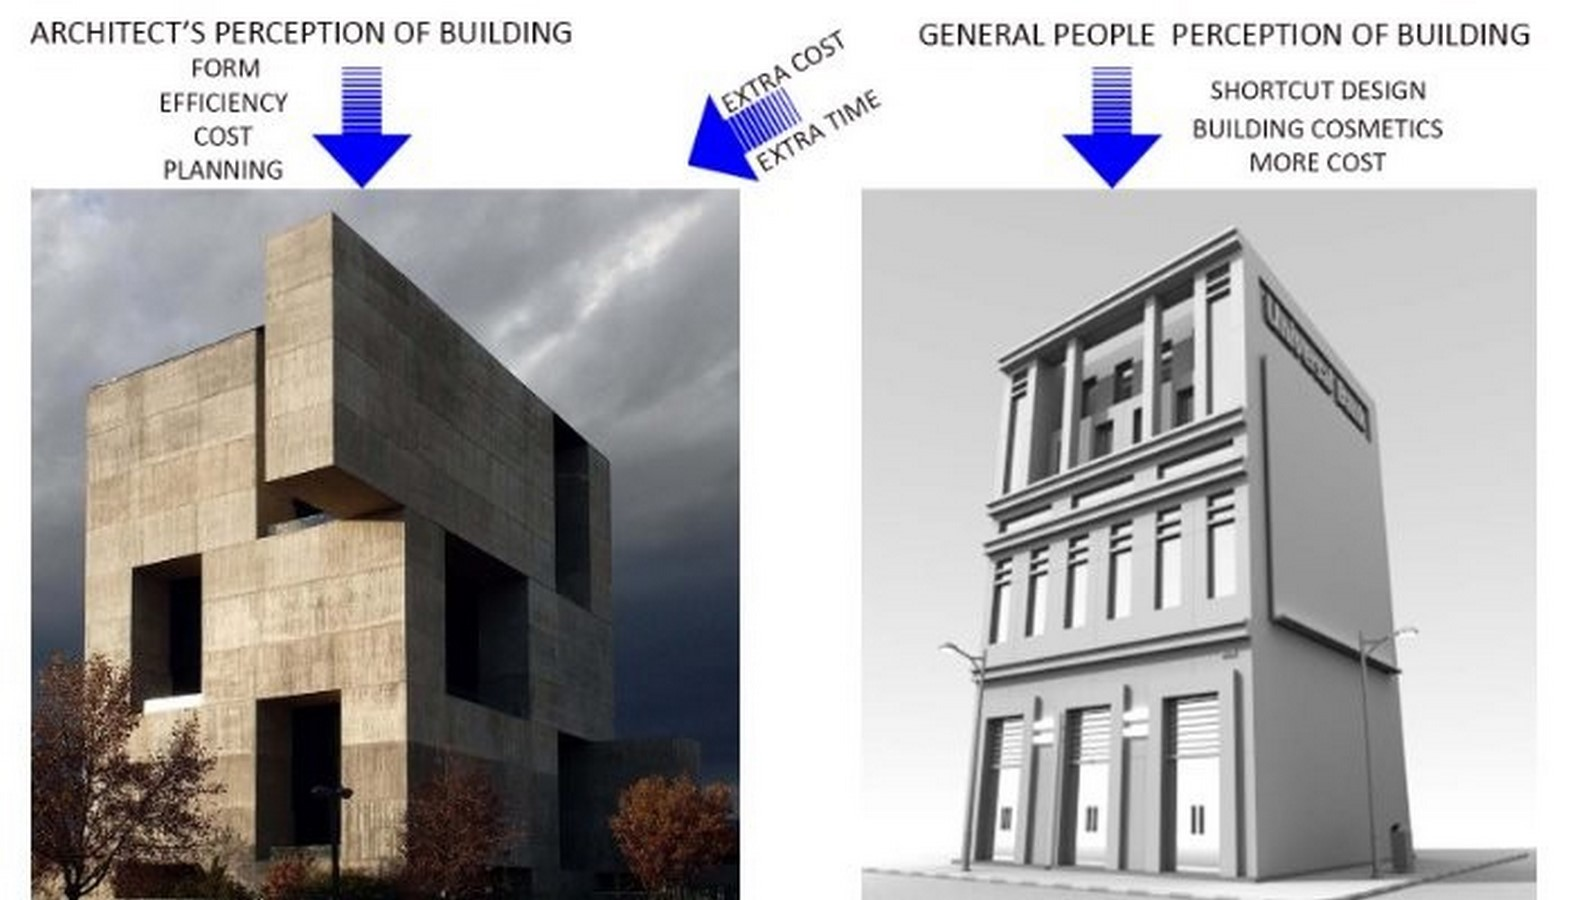 Is Architecture only about aesthetics? - Sheet2